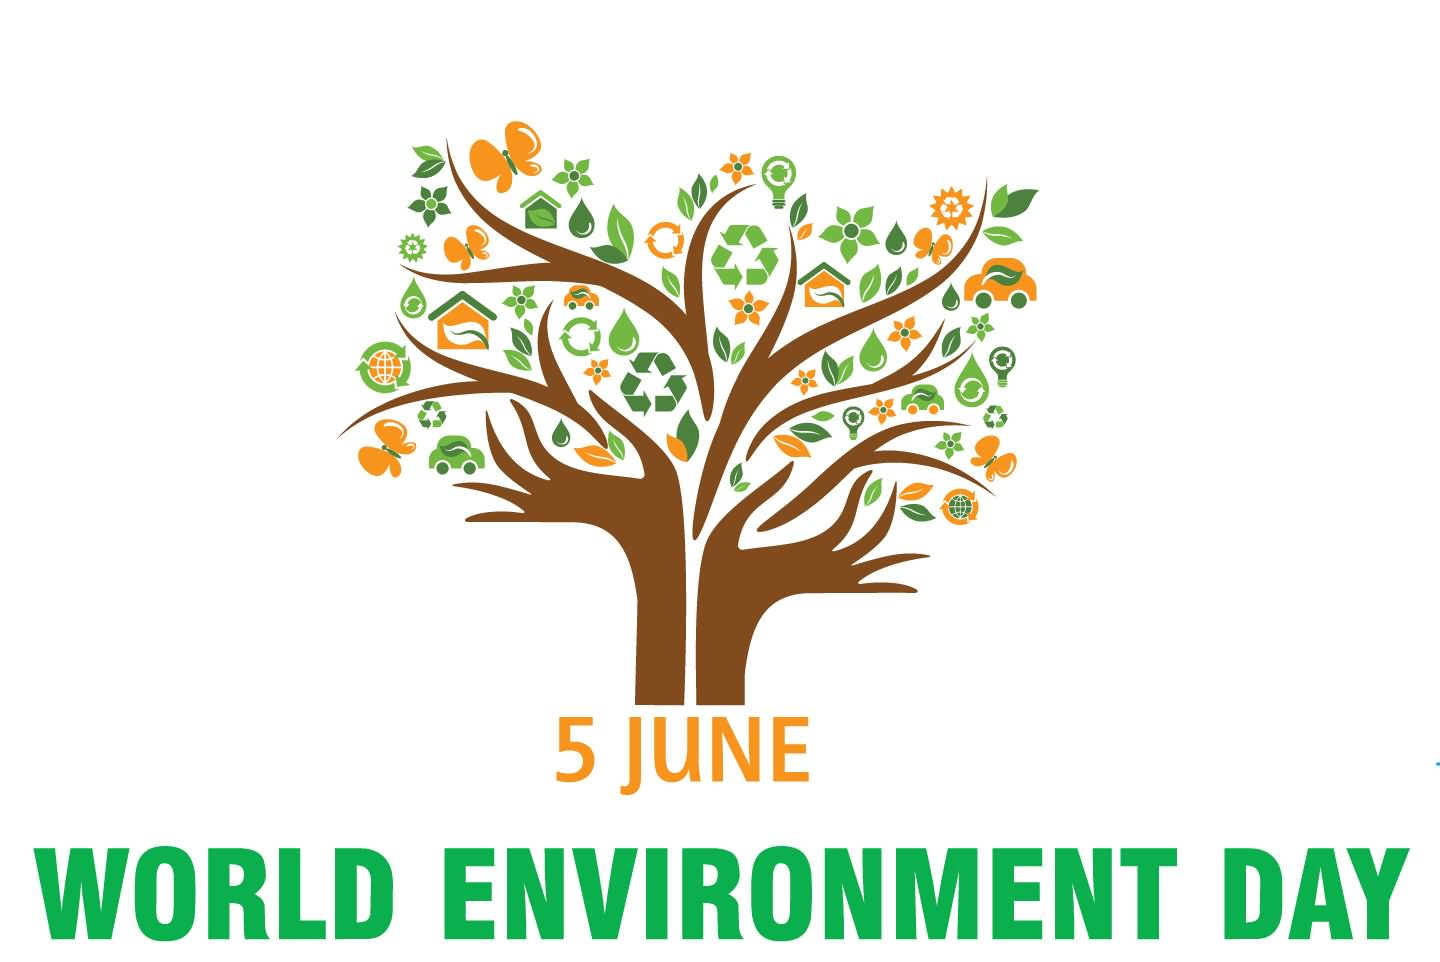 World Environment Day - June  05  IMAGES, GIF, ANIMATED GIF, WALLPAPER, STICKER FOR WHATSAPP & FACEBOOK